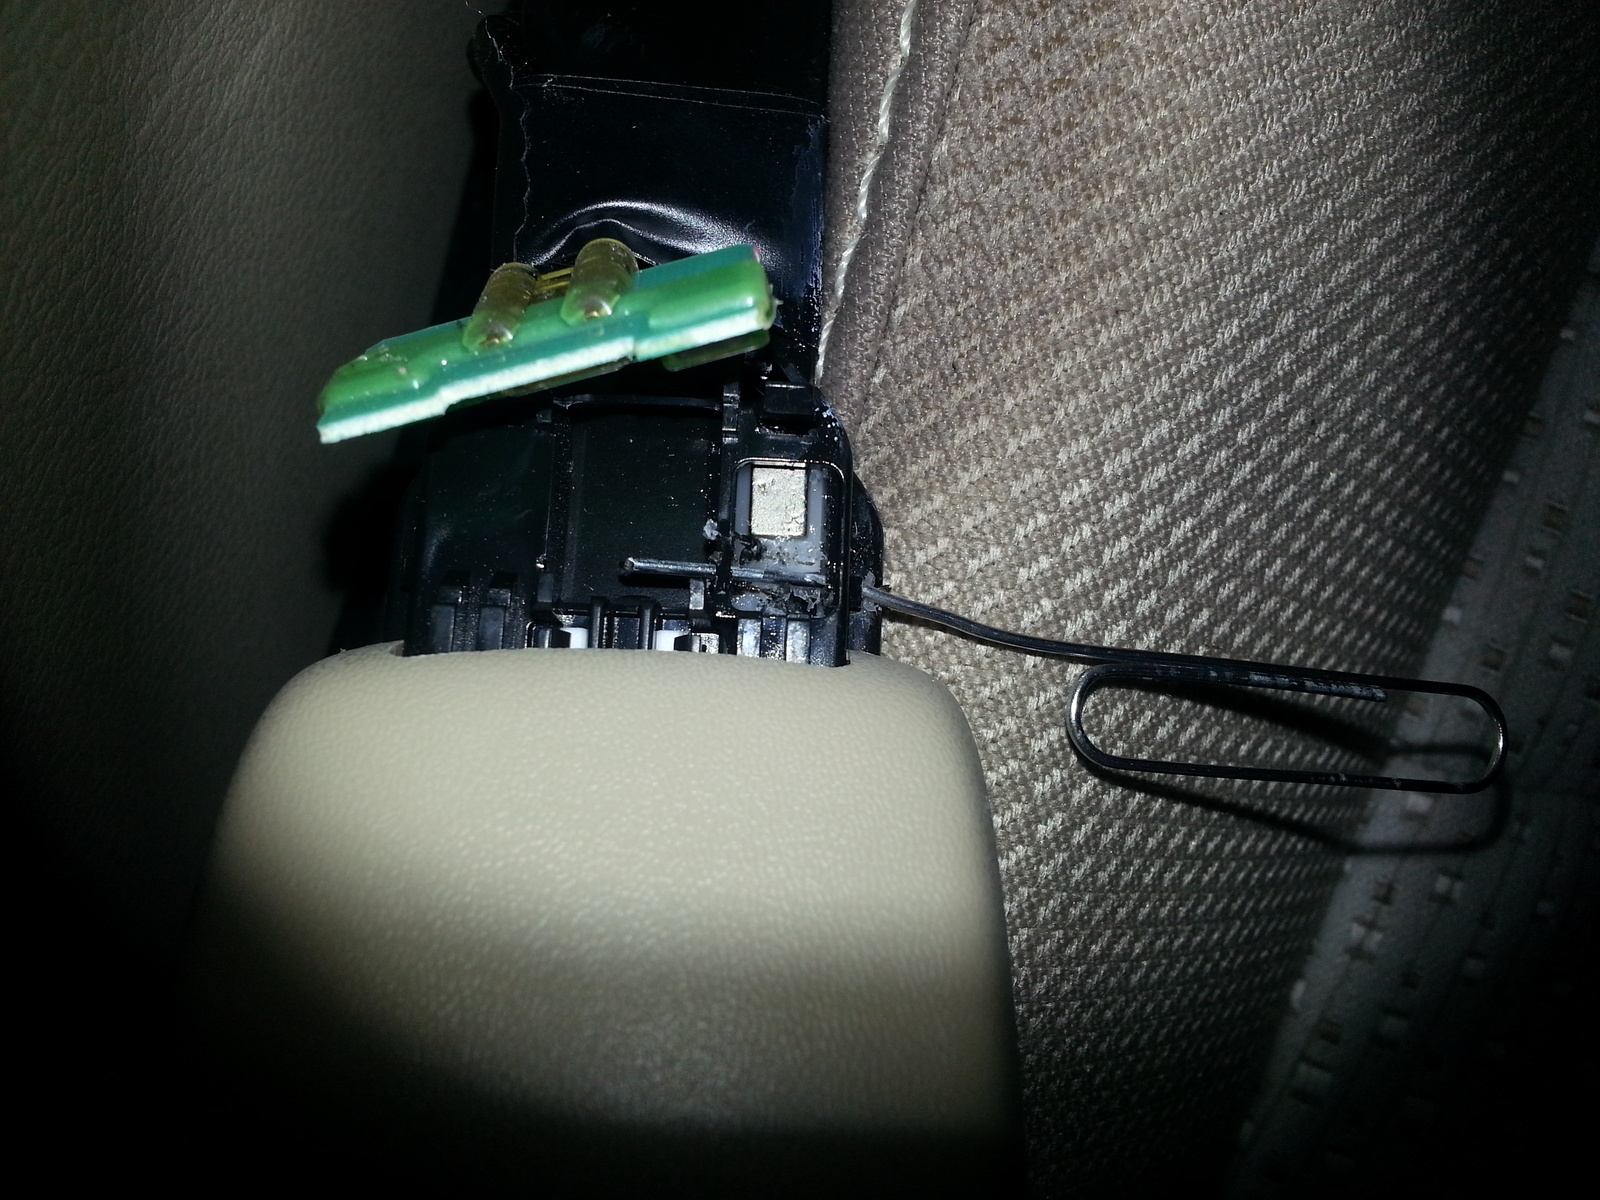 Toyota Camry Questions - How can I disable the seatbelt